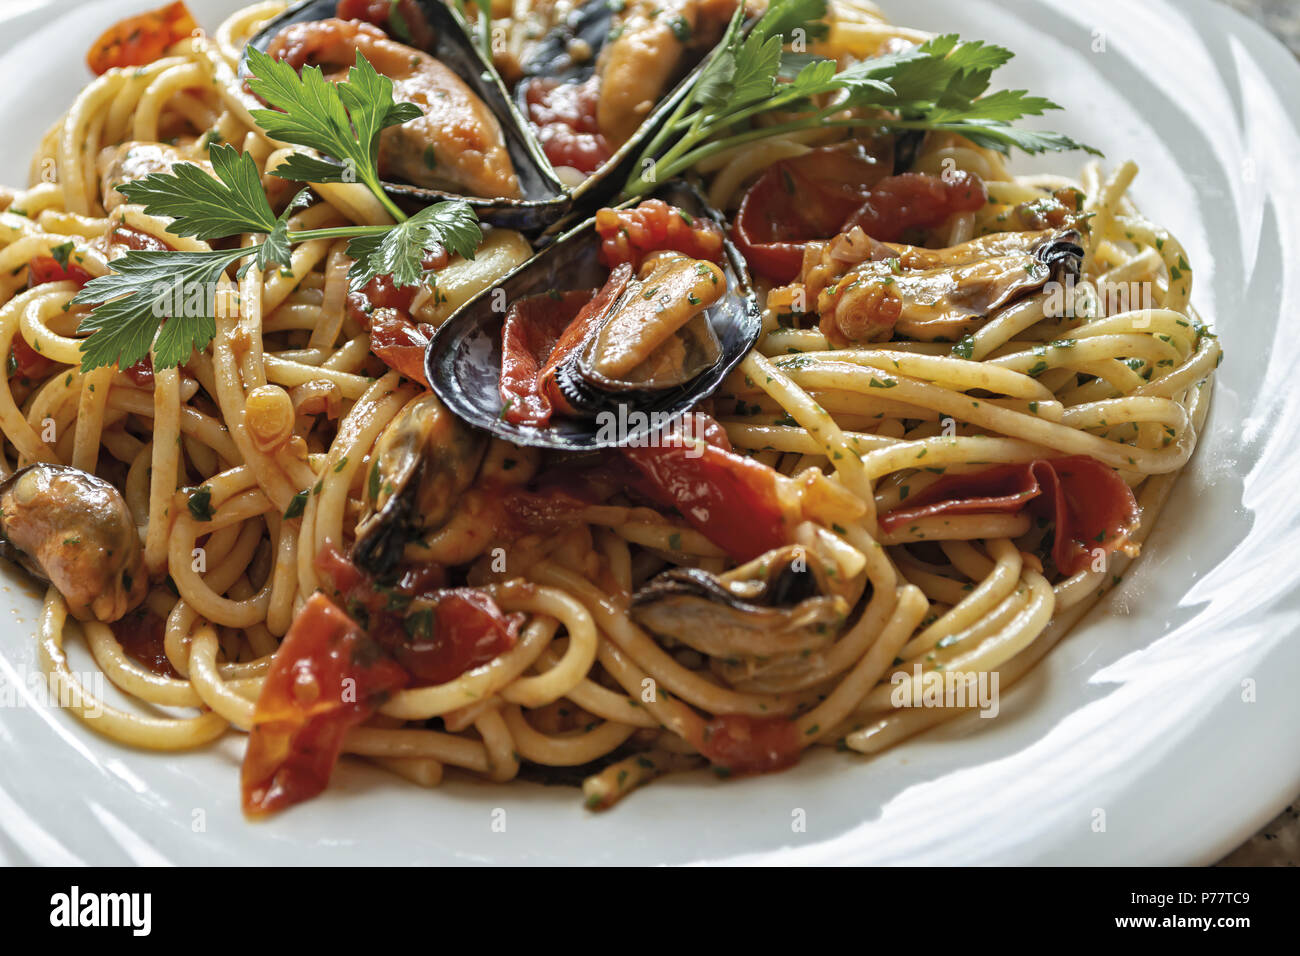 spaghetti pasta with mussels tomato and parsley 4 - Stock Image